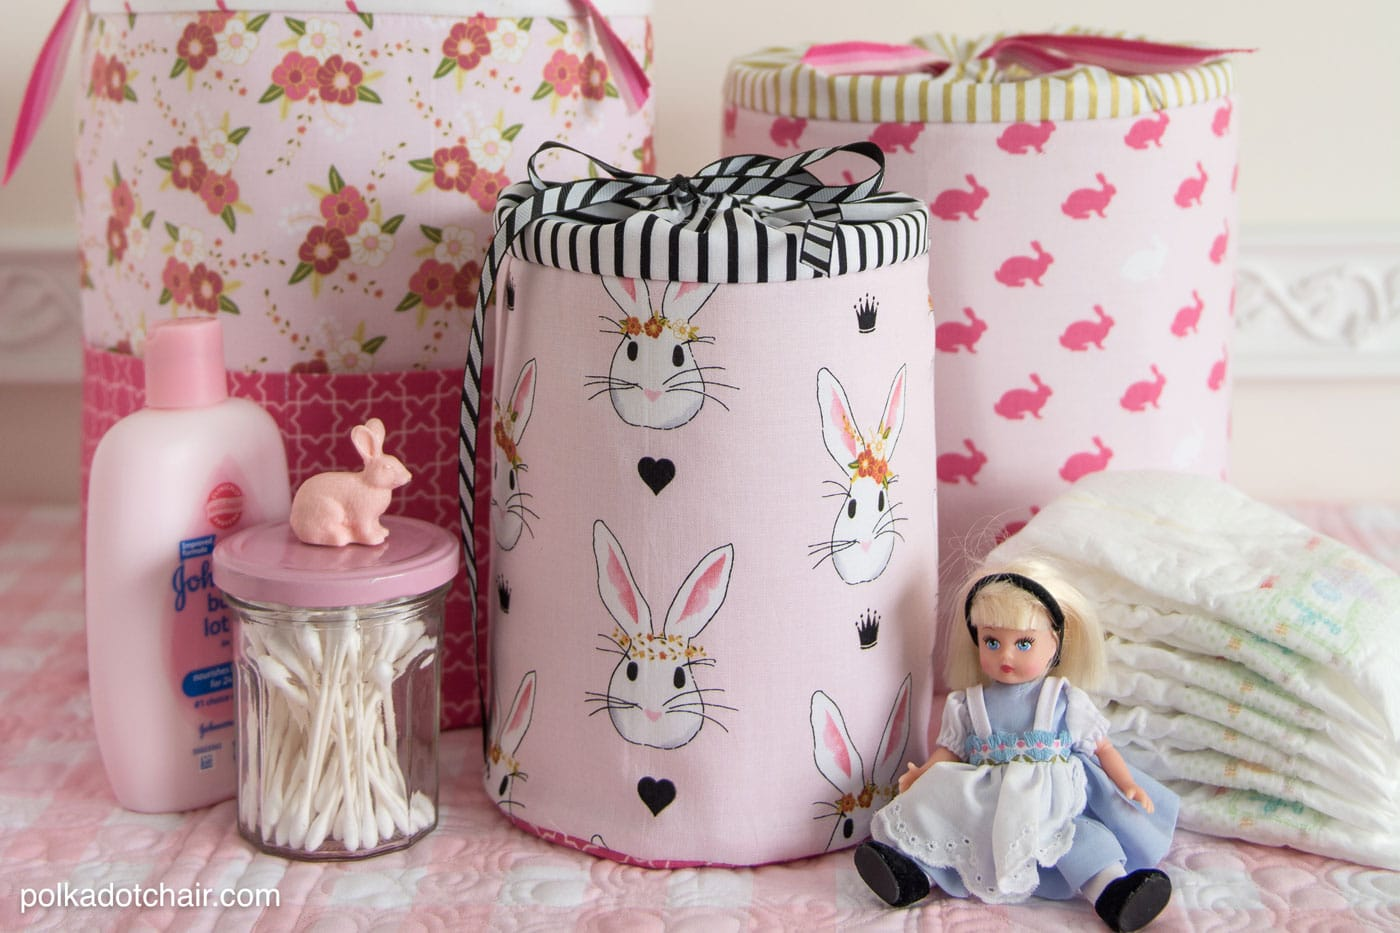 Padded Storage Cases; sewing pattern by polkadotchair.com